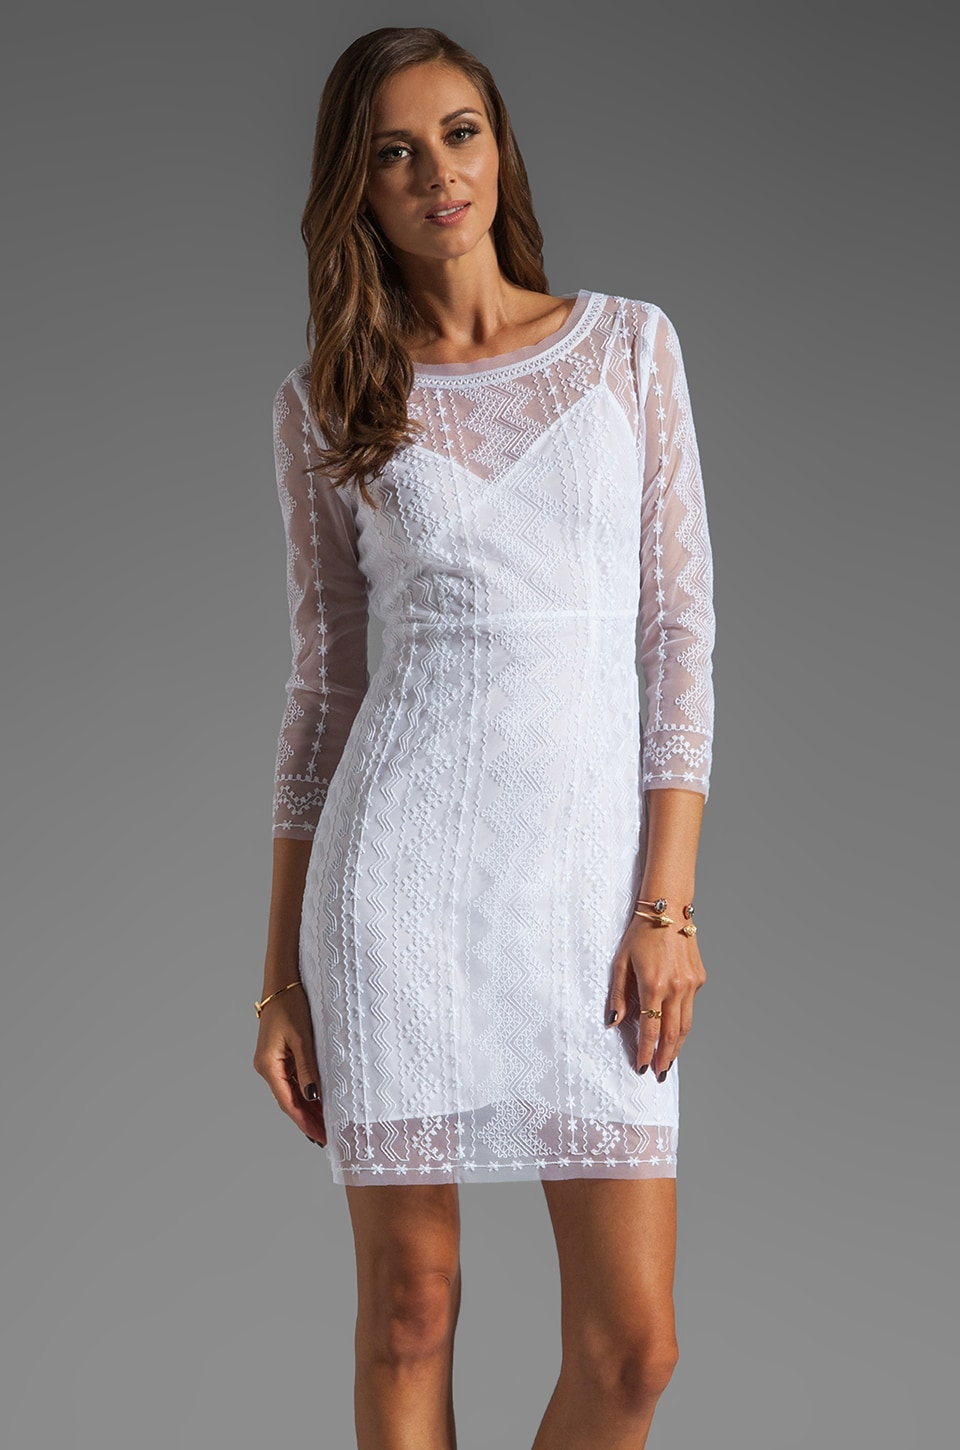 Catherine Malandrino Geometric Tulle Embroidered Dress in Blanc/Blanc